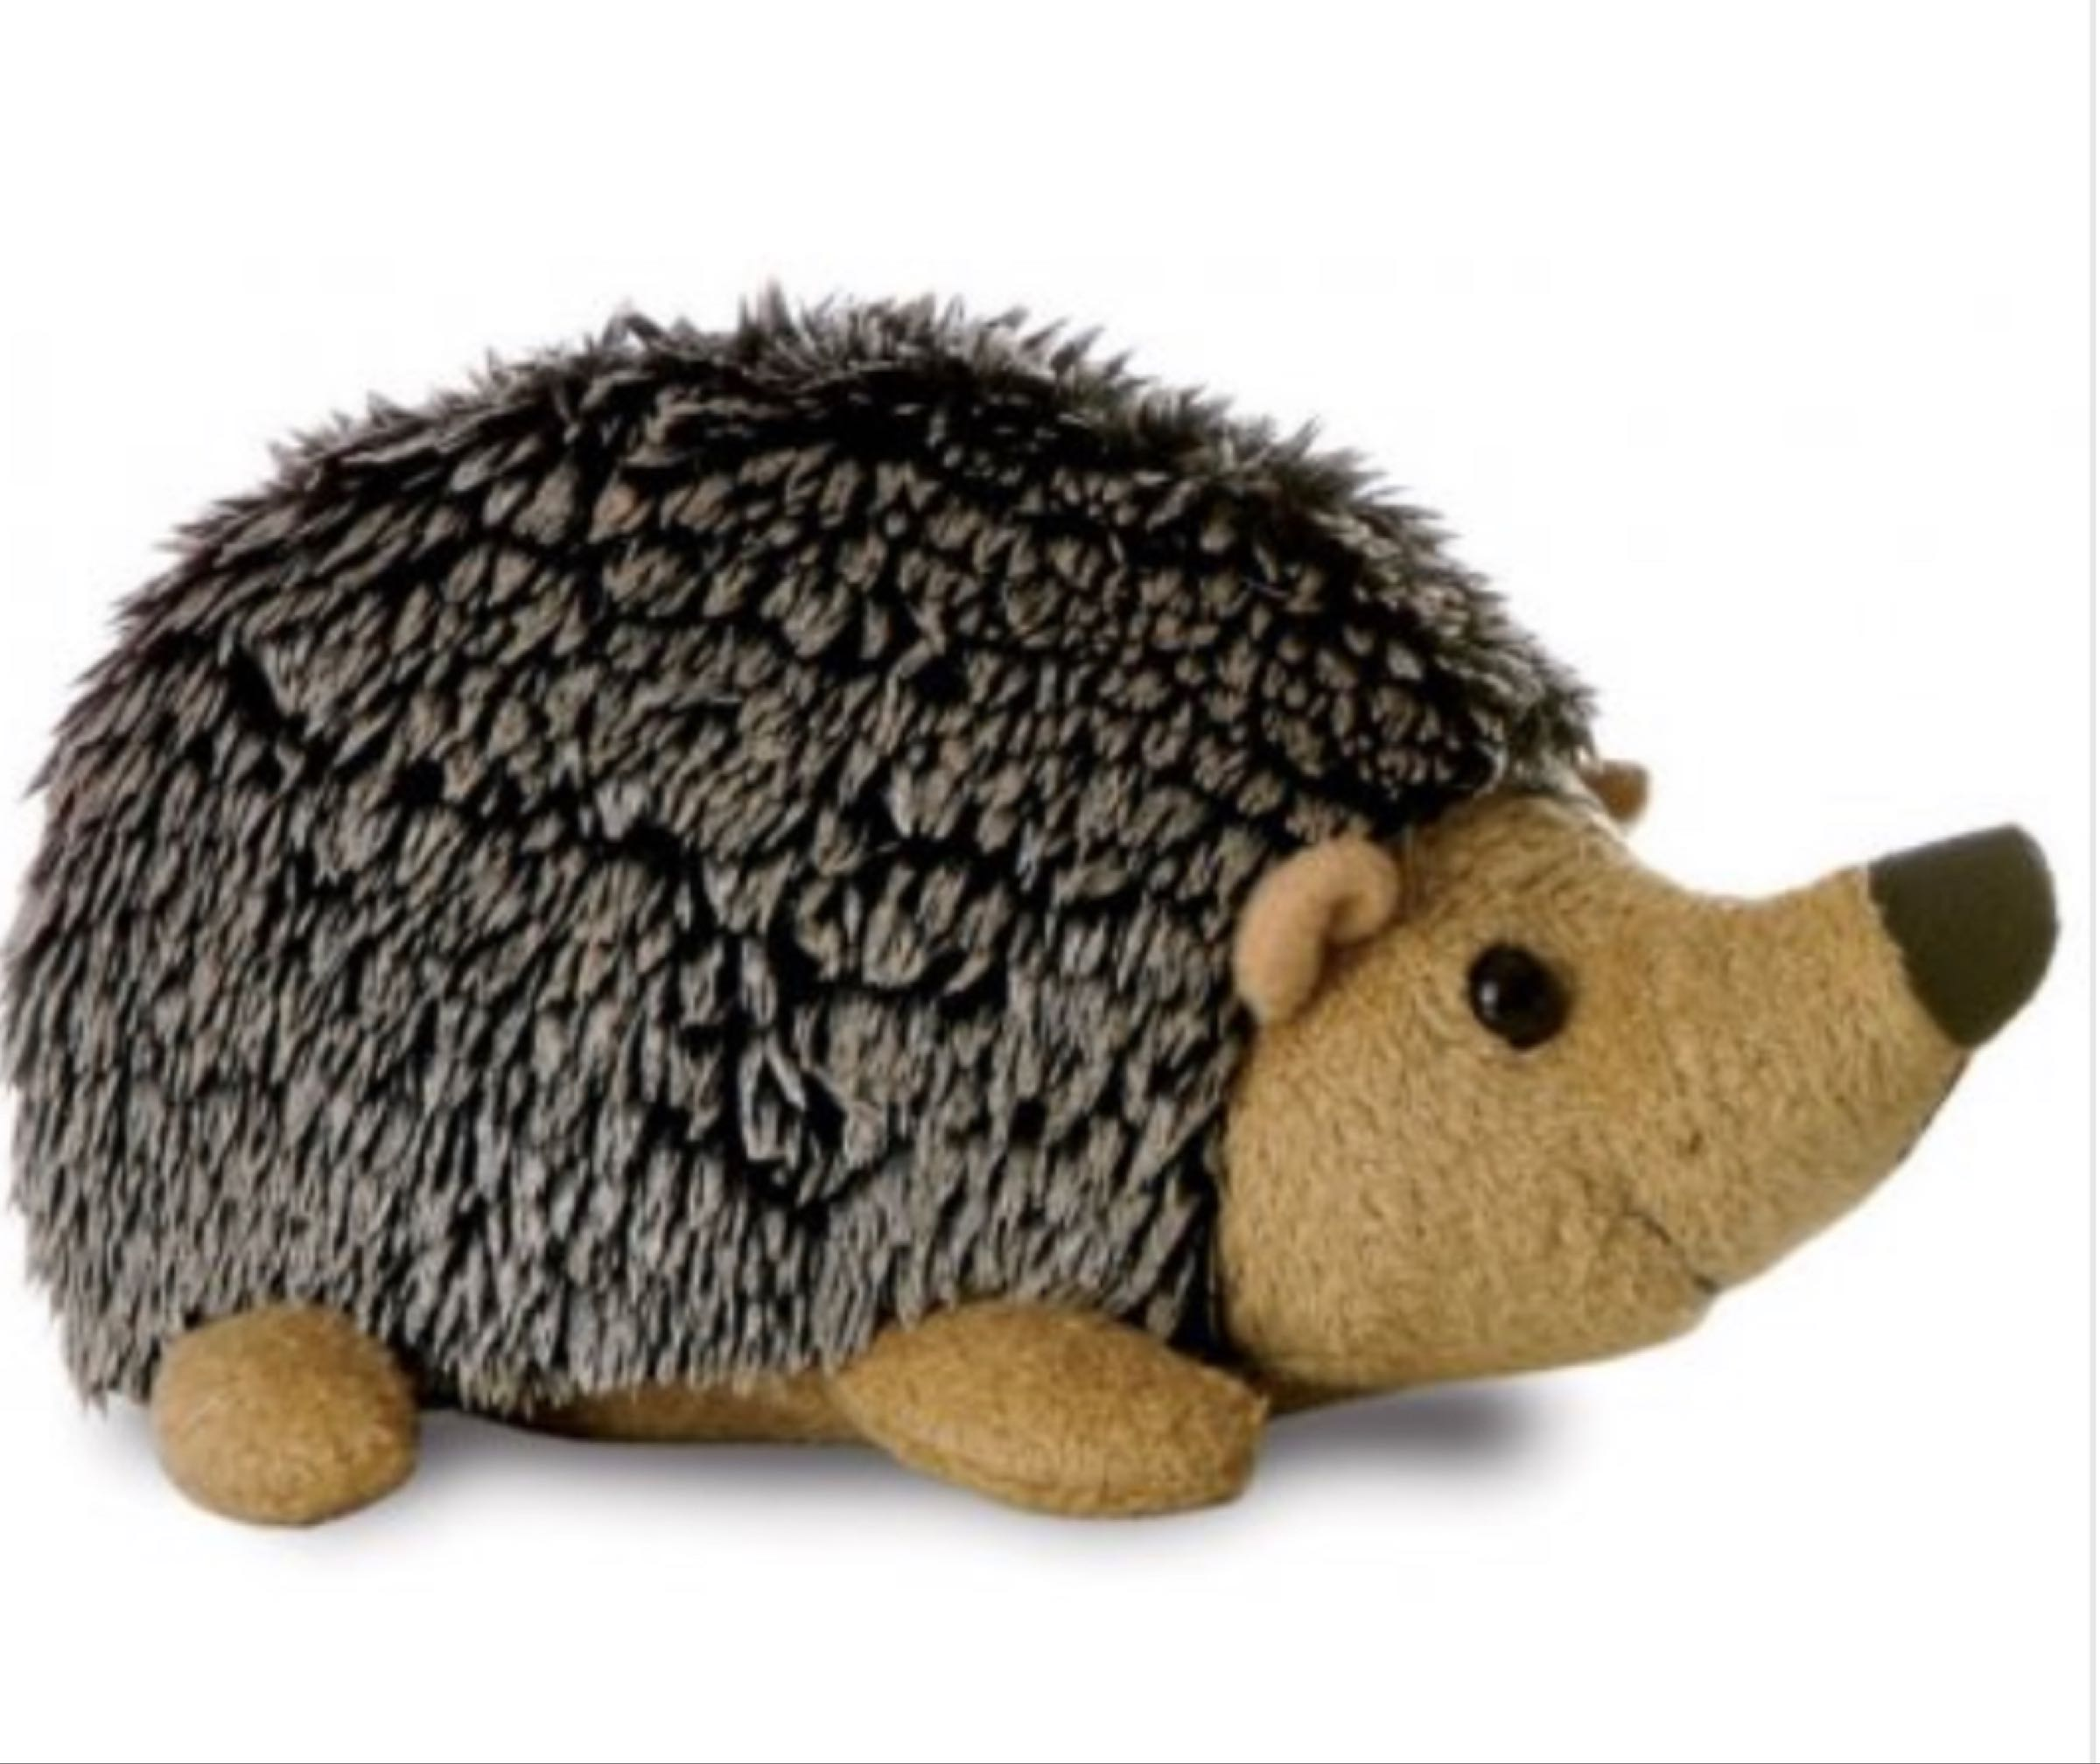 Howie the hedgehog soft toy 8 inch